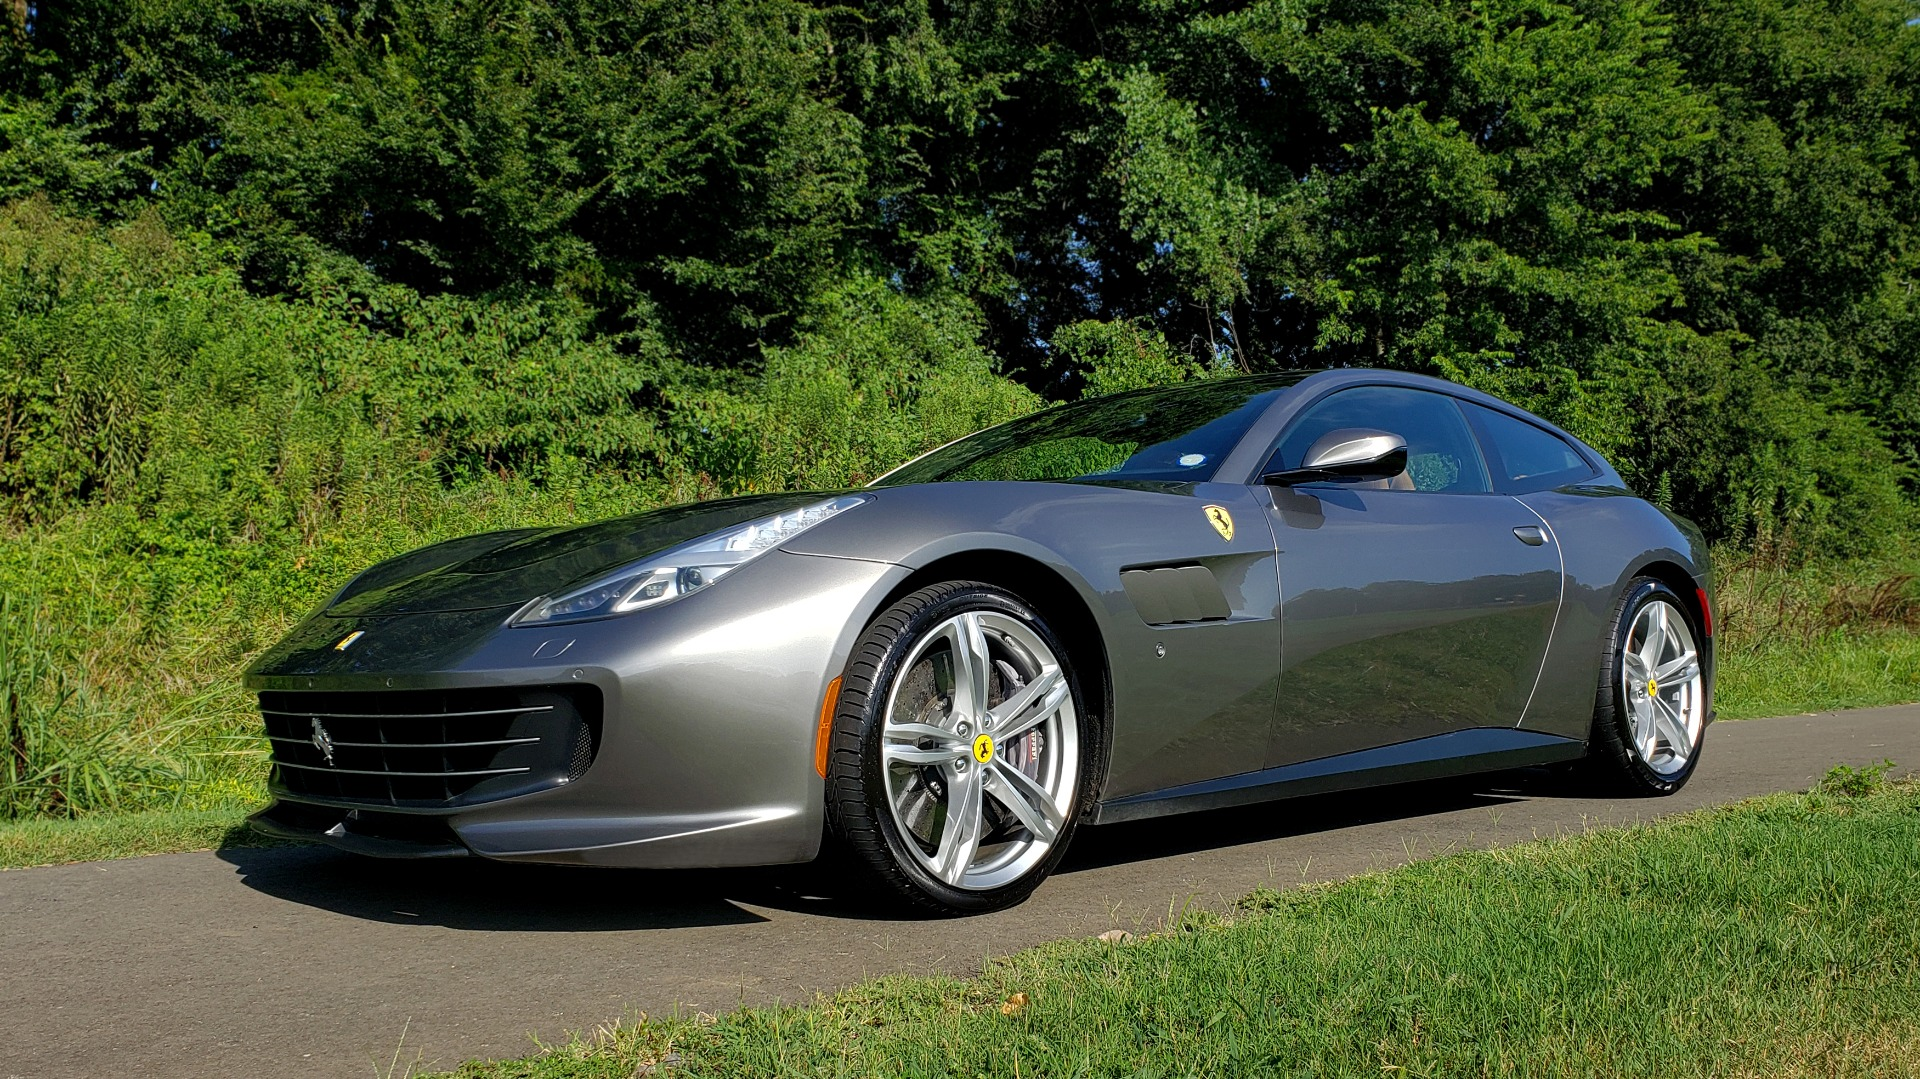 Used 2017 Ferrari GTC4Lusso for sale Sold at Formula Imports in Charlotte NC 28227 4